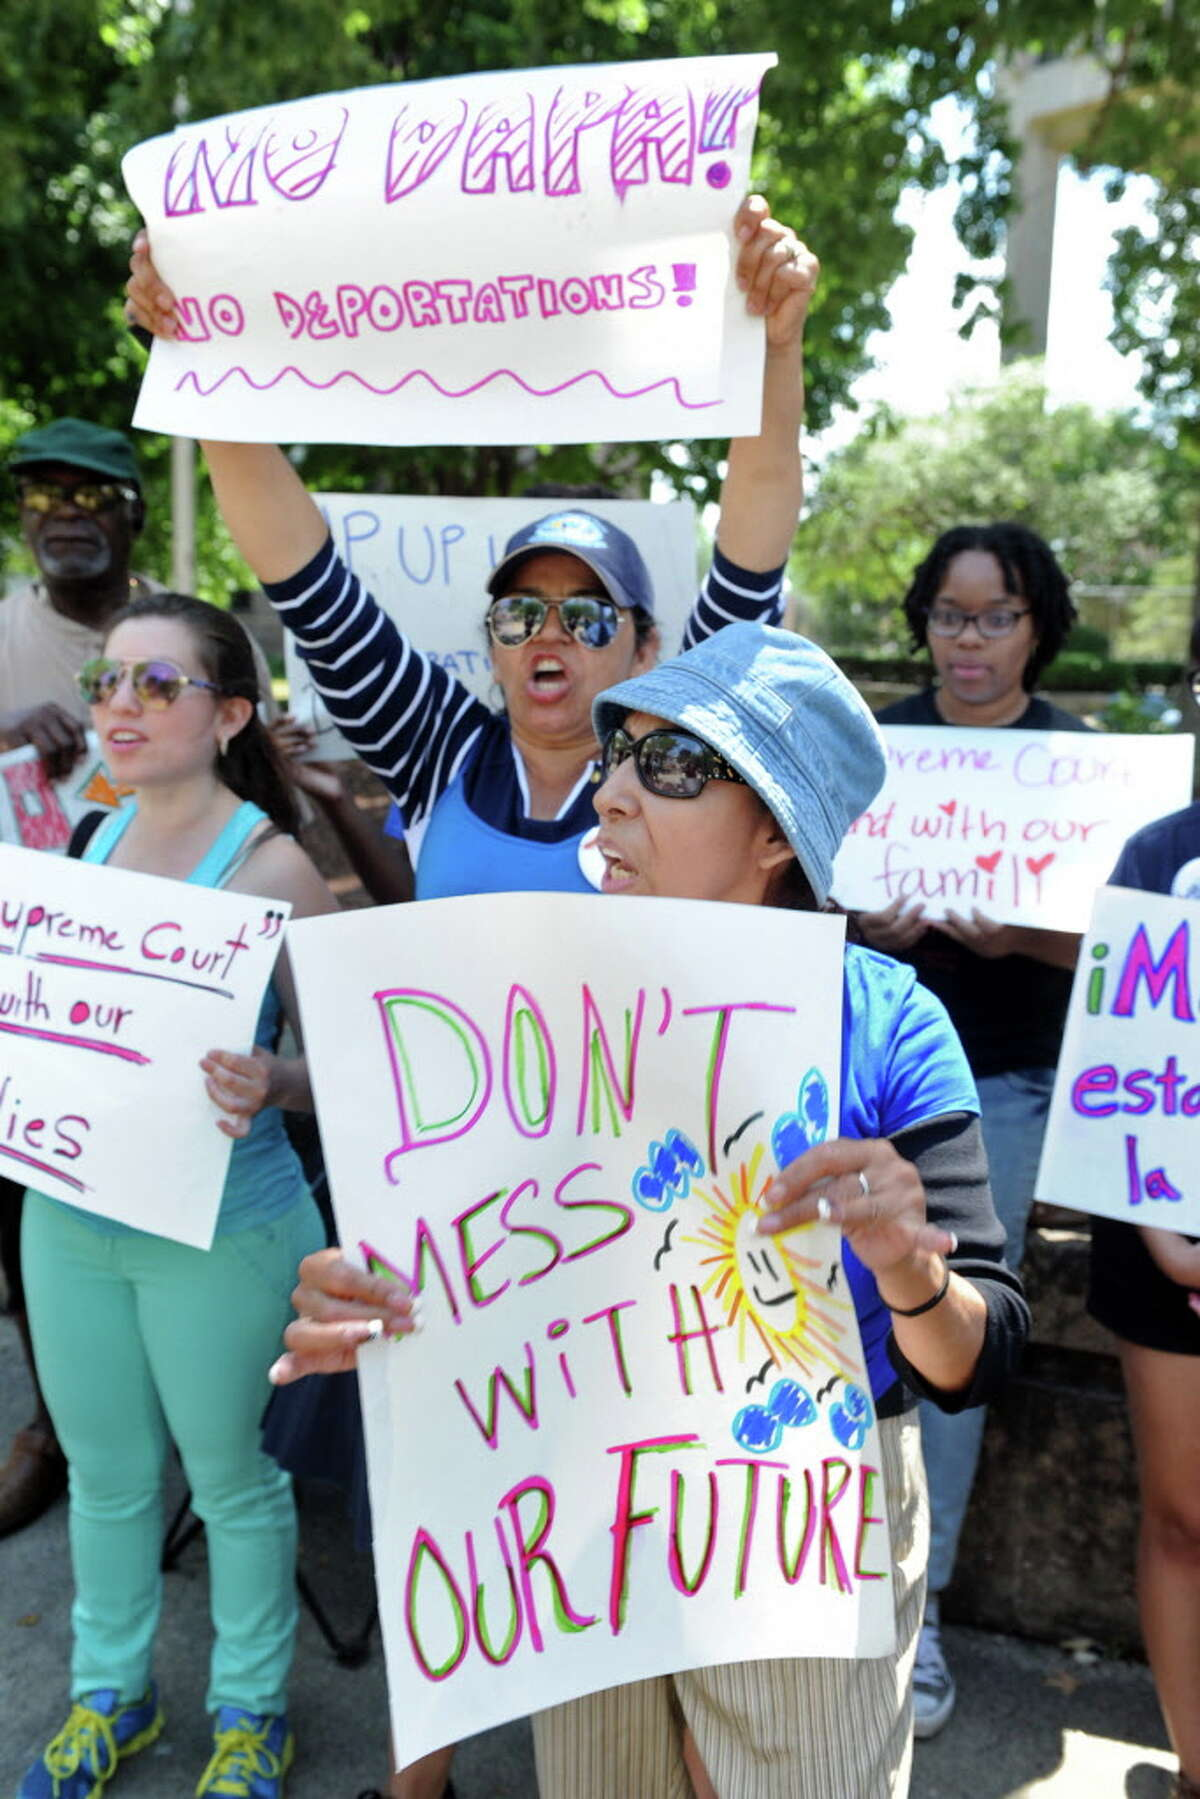 Maria Chumasero, front and center, and Maria Lima, back and center, both of Bridgeport, take part in a rally in front the Federal Courthouse, in Bridgeport, Conn. June 27, 2016. The rally was organized by local immigration advocacy groups in reaction to the Supreme Court?'s vote last week regarding Deferred Action for Parents of Americans.